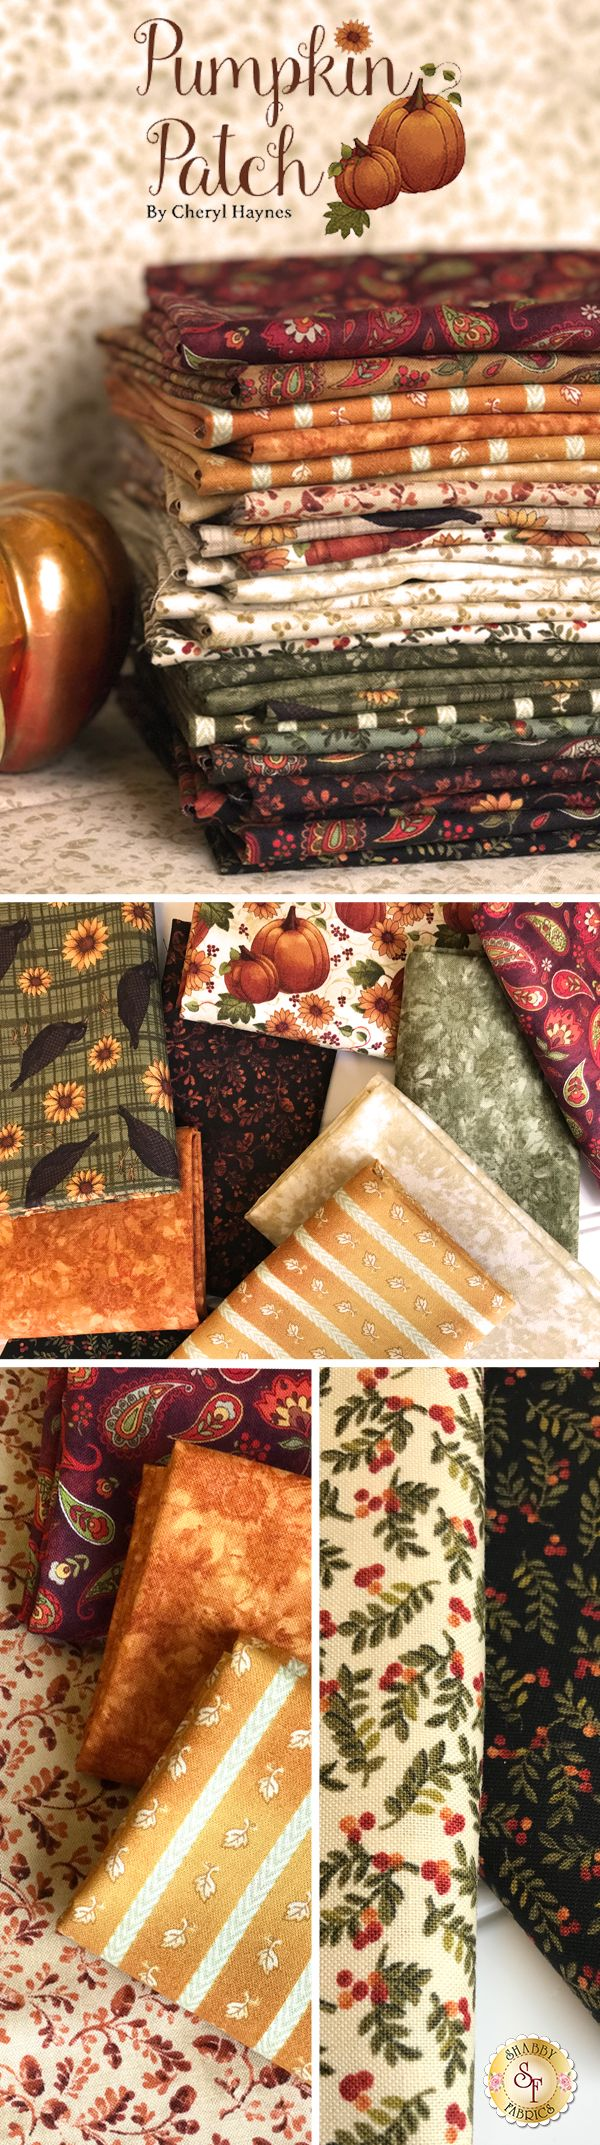 Pumpkin Patch by Cheryl Haynes for Benartex Fabrics is a beautiufl autumn fabric collection available at Shabby Fabrics!